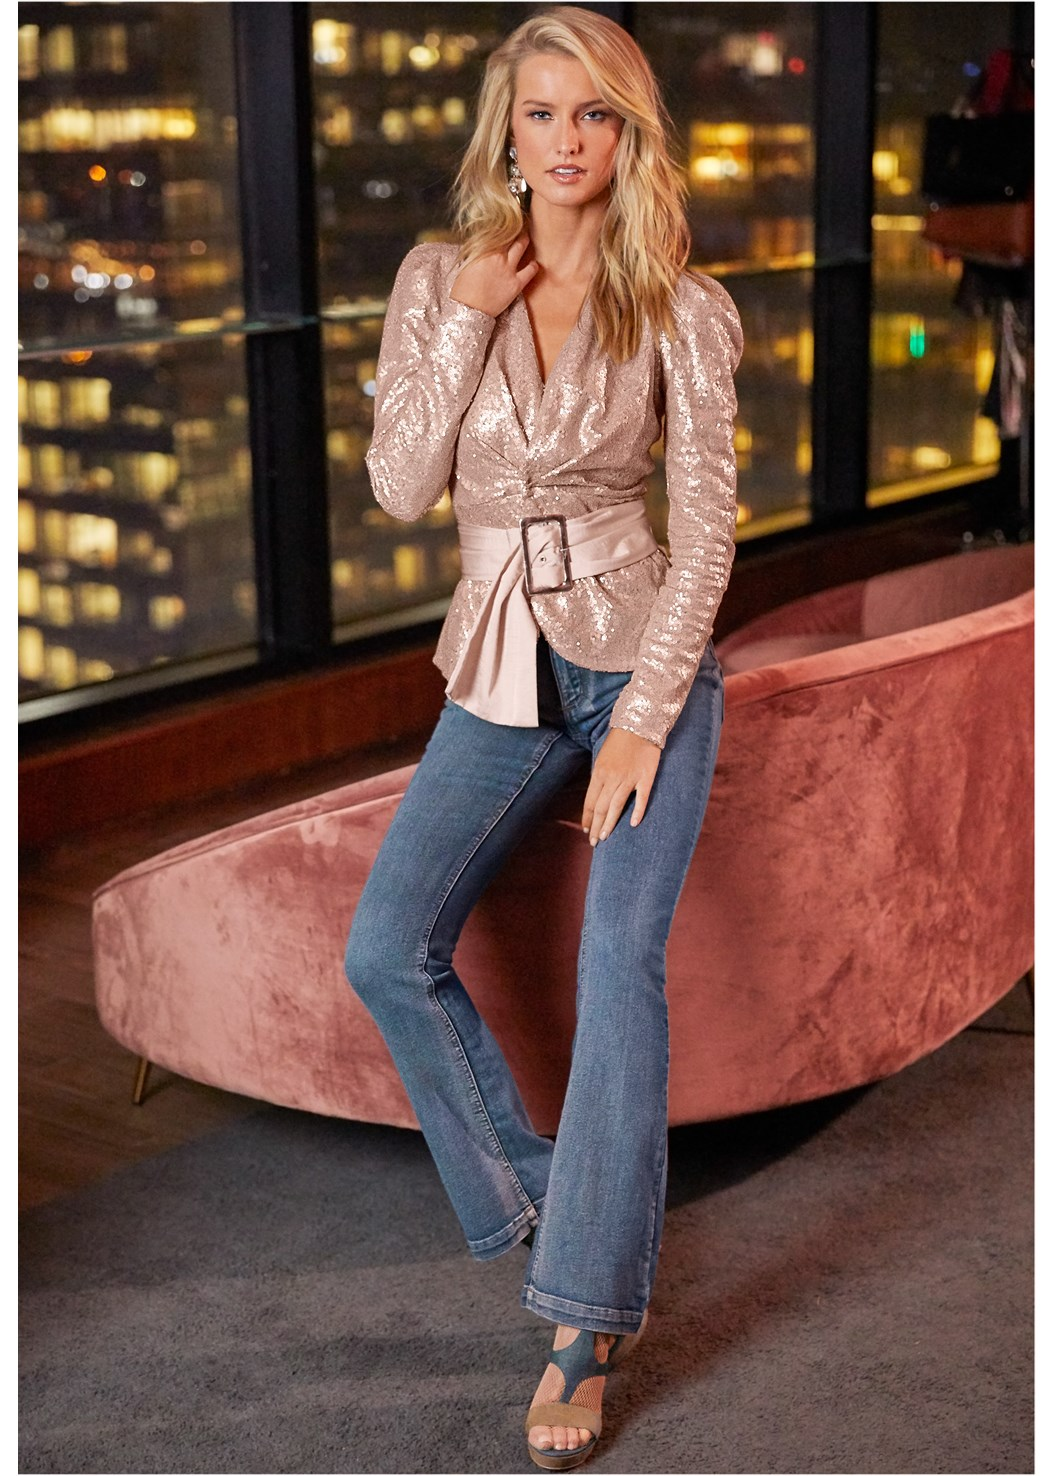 Belted Sequin Top,Casual Bootcut Jeans,Mid Rise Full Length Slimming Stretch Jeggings,Lucite Detail Heels